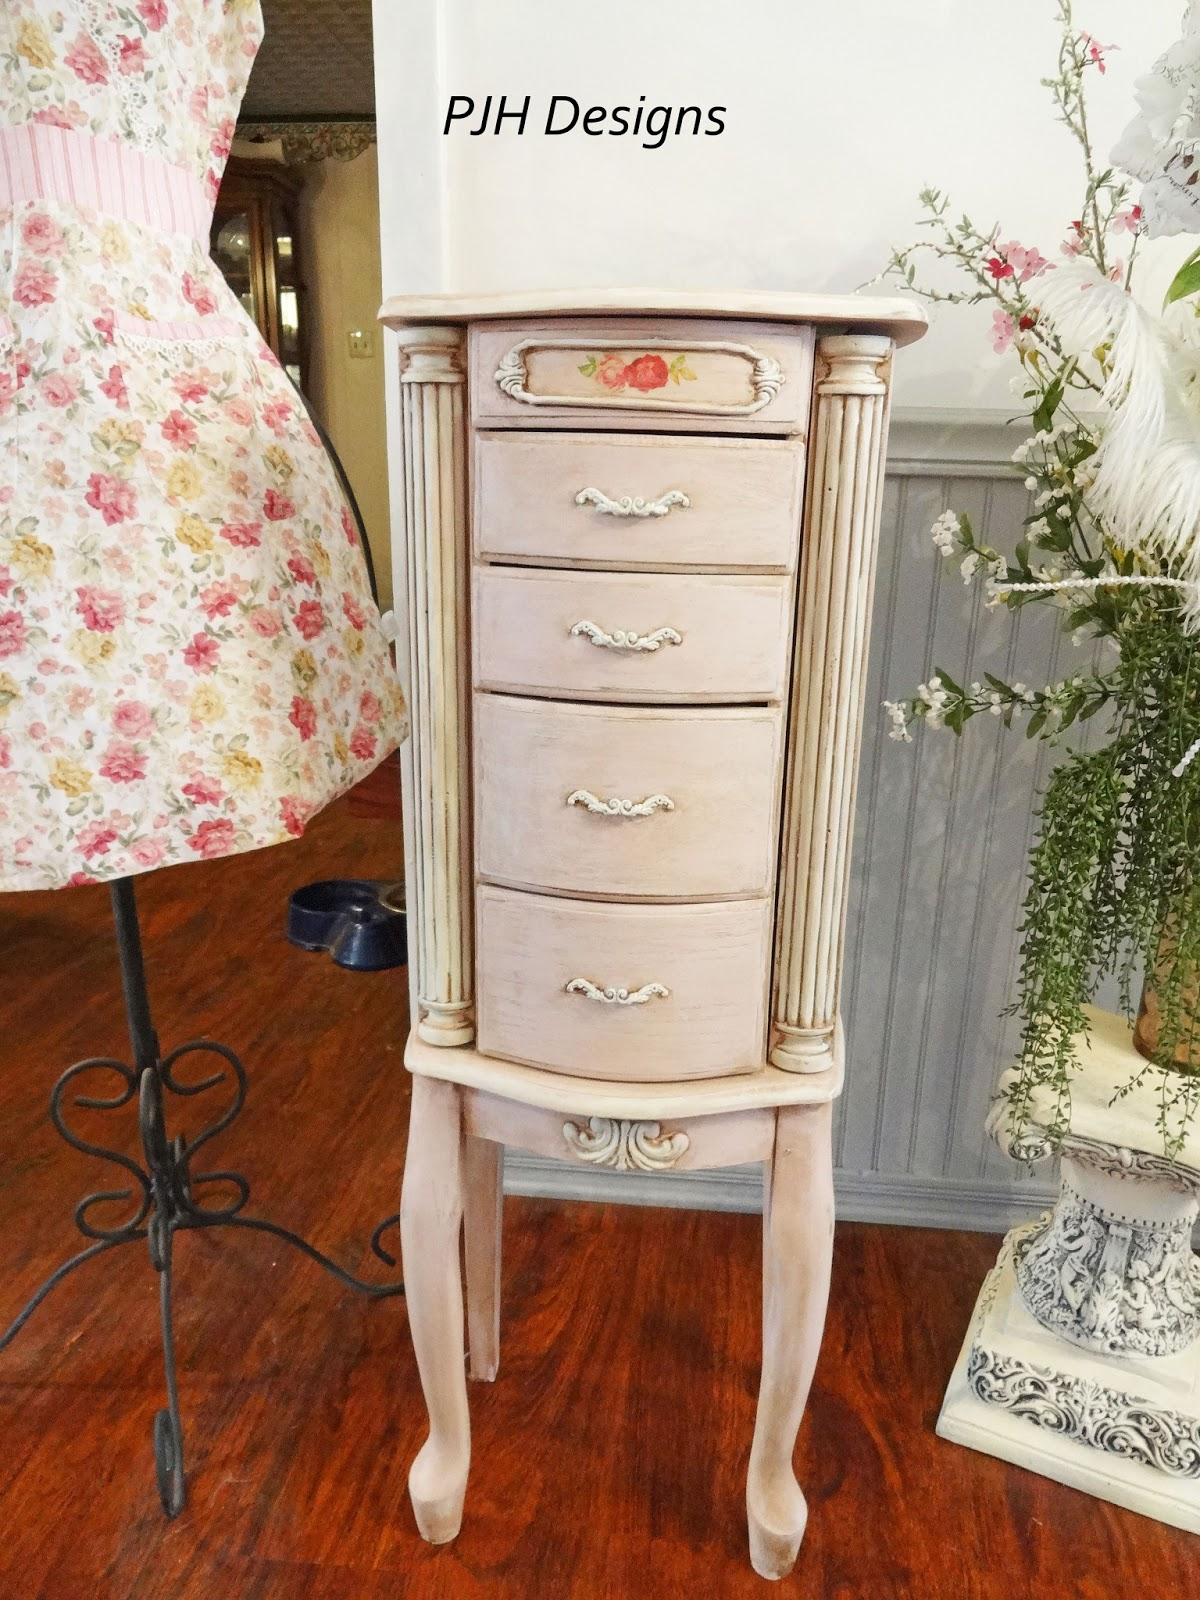 PJH Designs Hand Painted Antique Furniture Shabby Chic Pink Jewelry